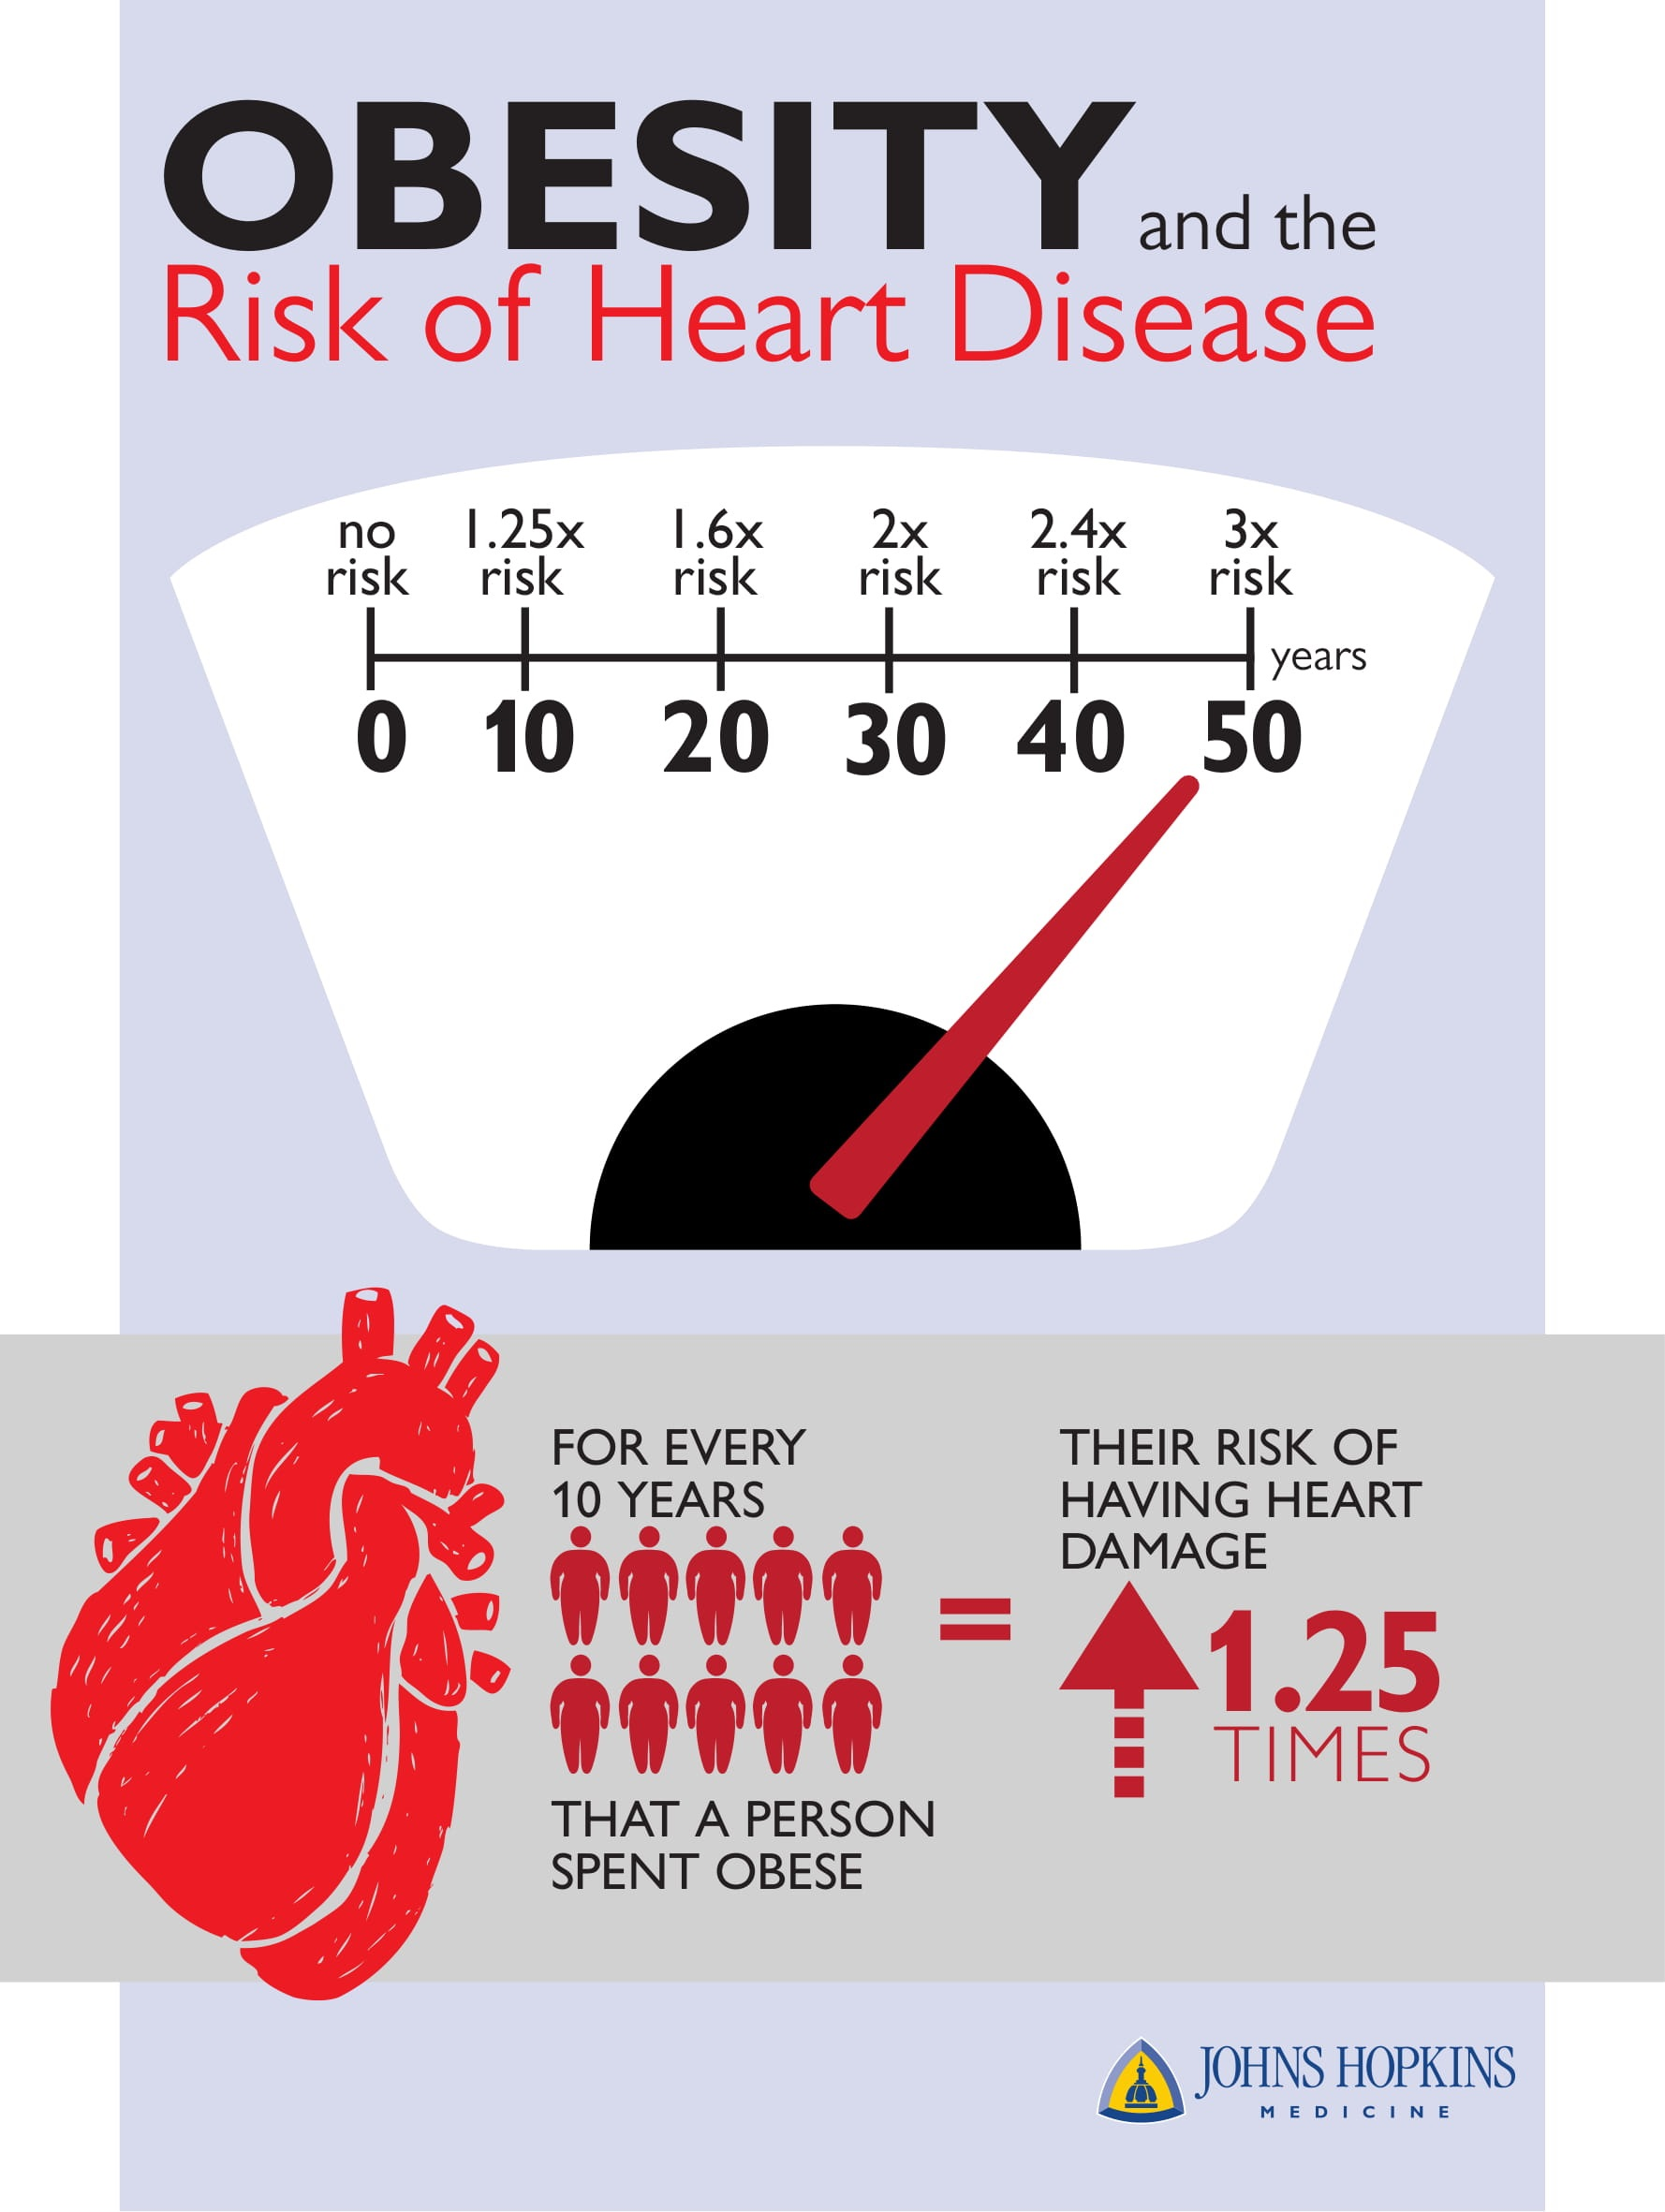 infographic of obesity and risk of heart disease